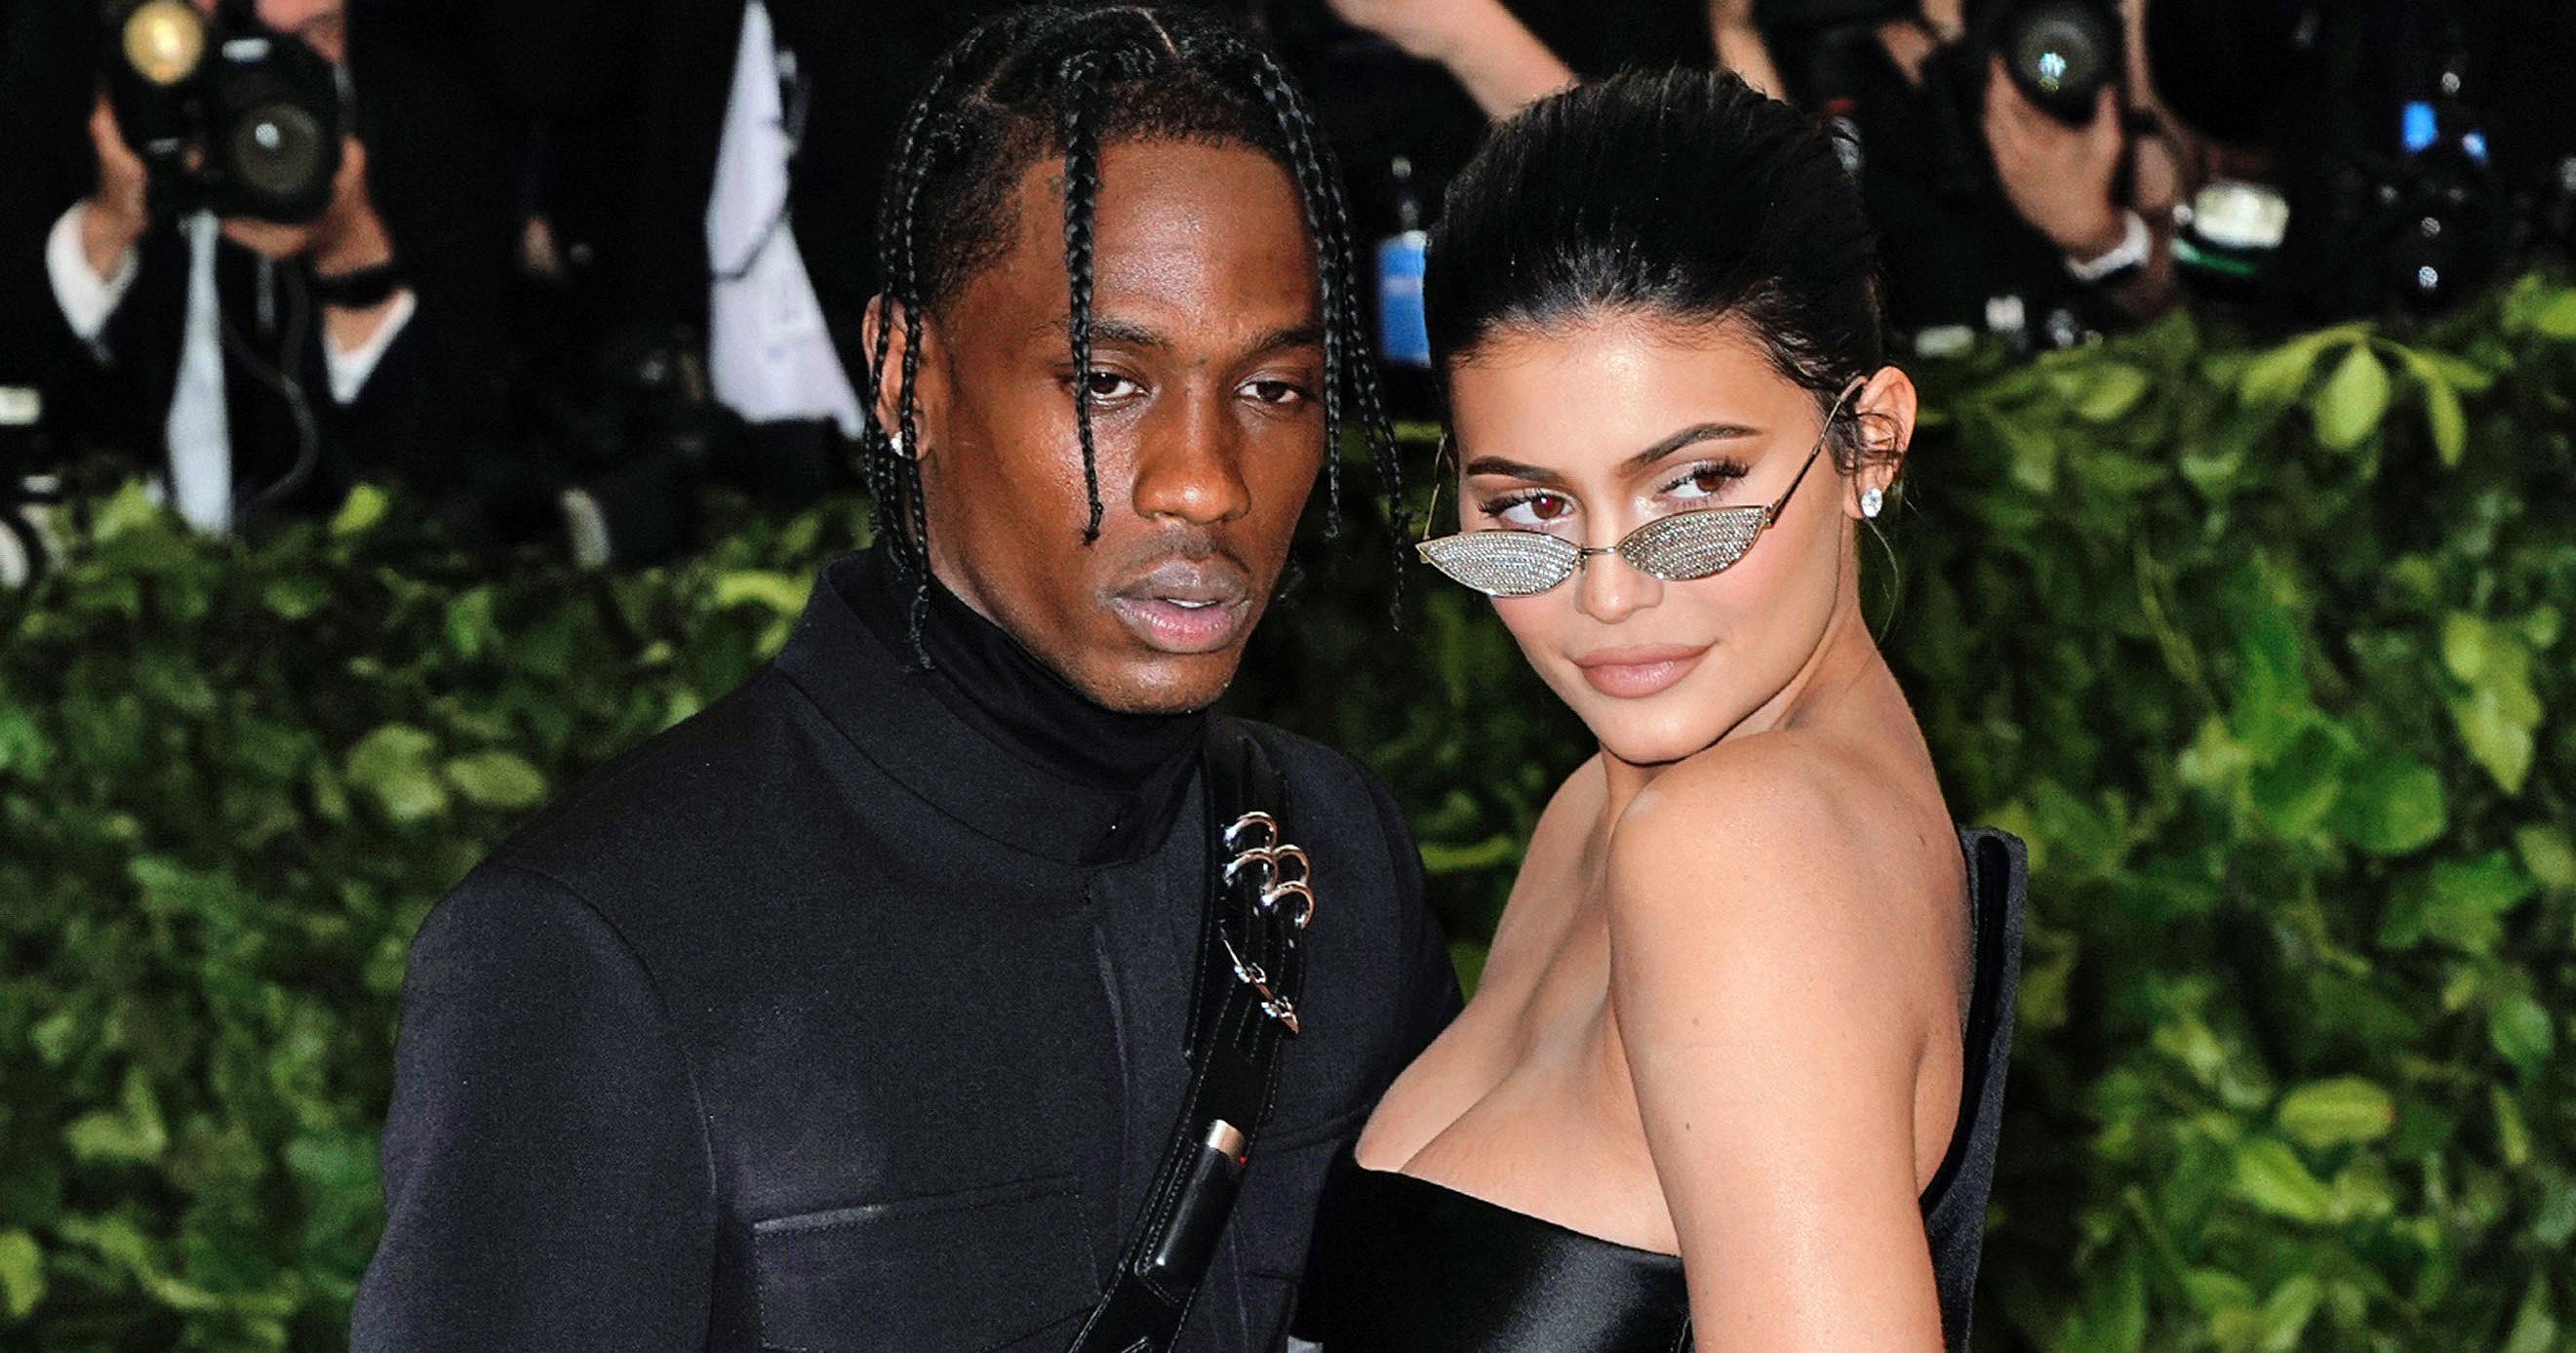 Kylie Jenner Sparks Pregnancy Speculation: My 'Baby #2'